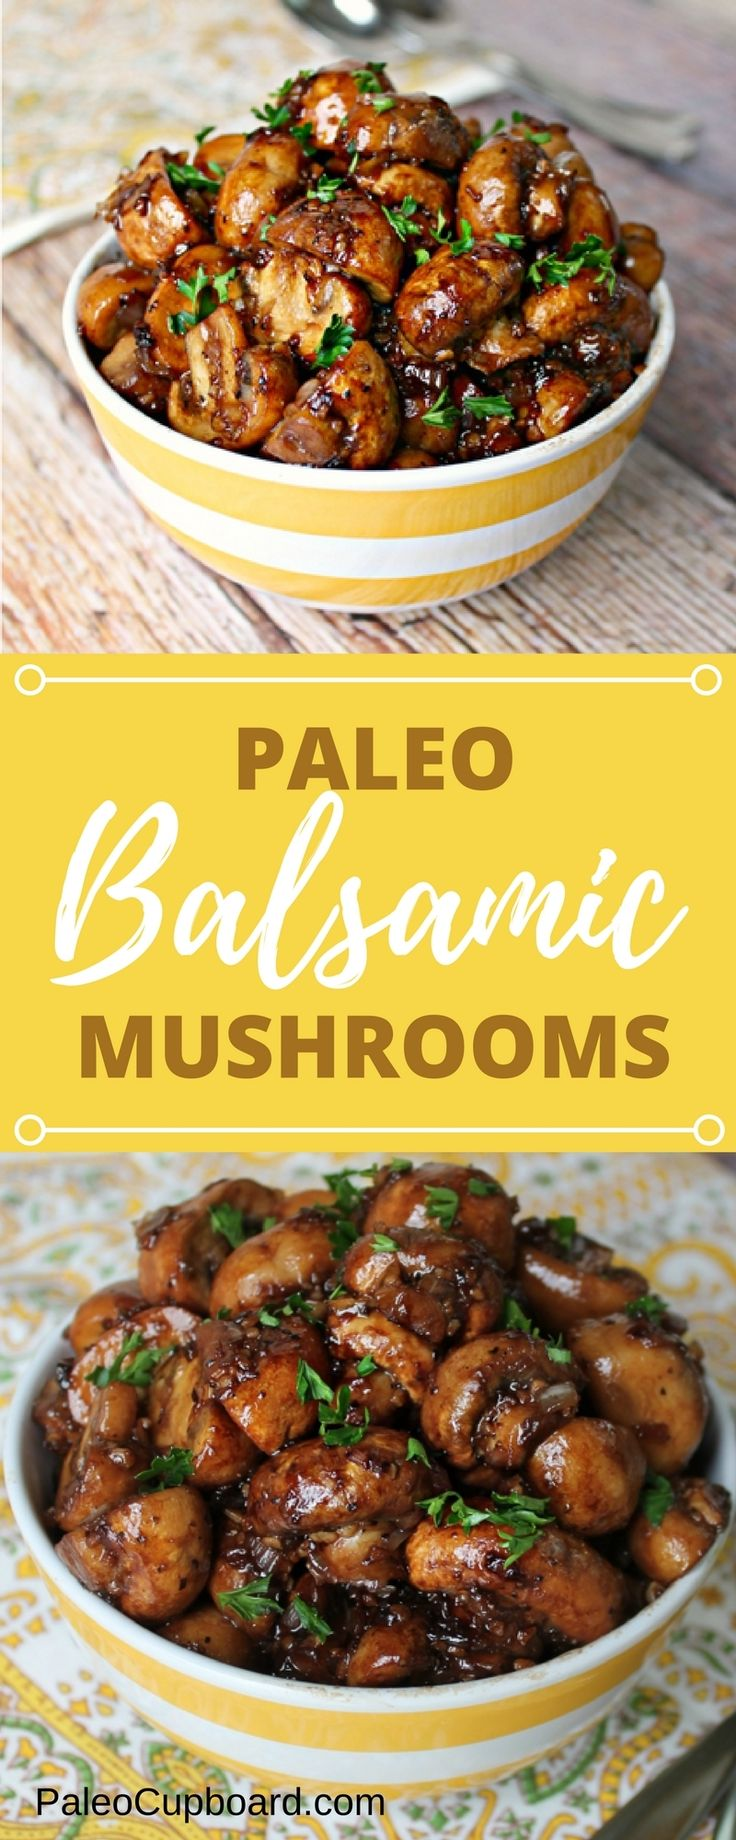 Paleo Balsamic Mushroom recipe - Great side dish! PaleoCupboard.com